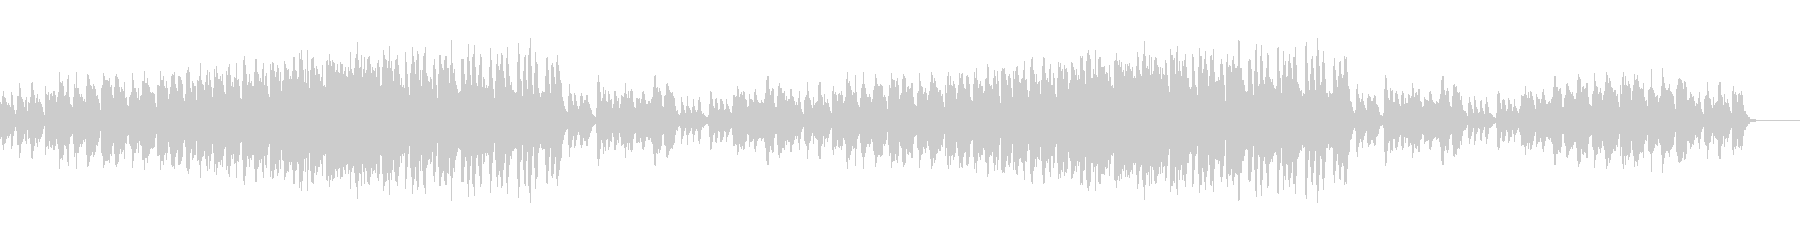 A song that suits science, technology, and biological images's unreproduced waveform